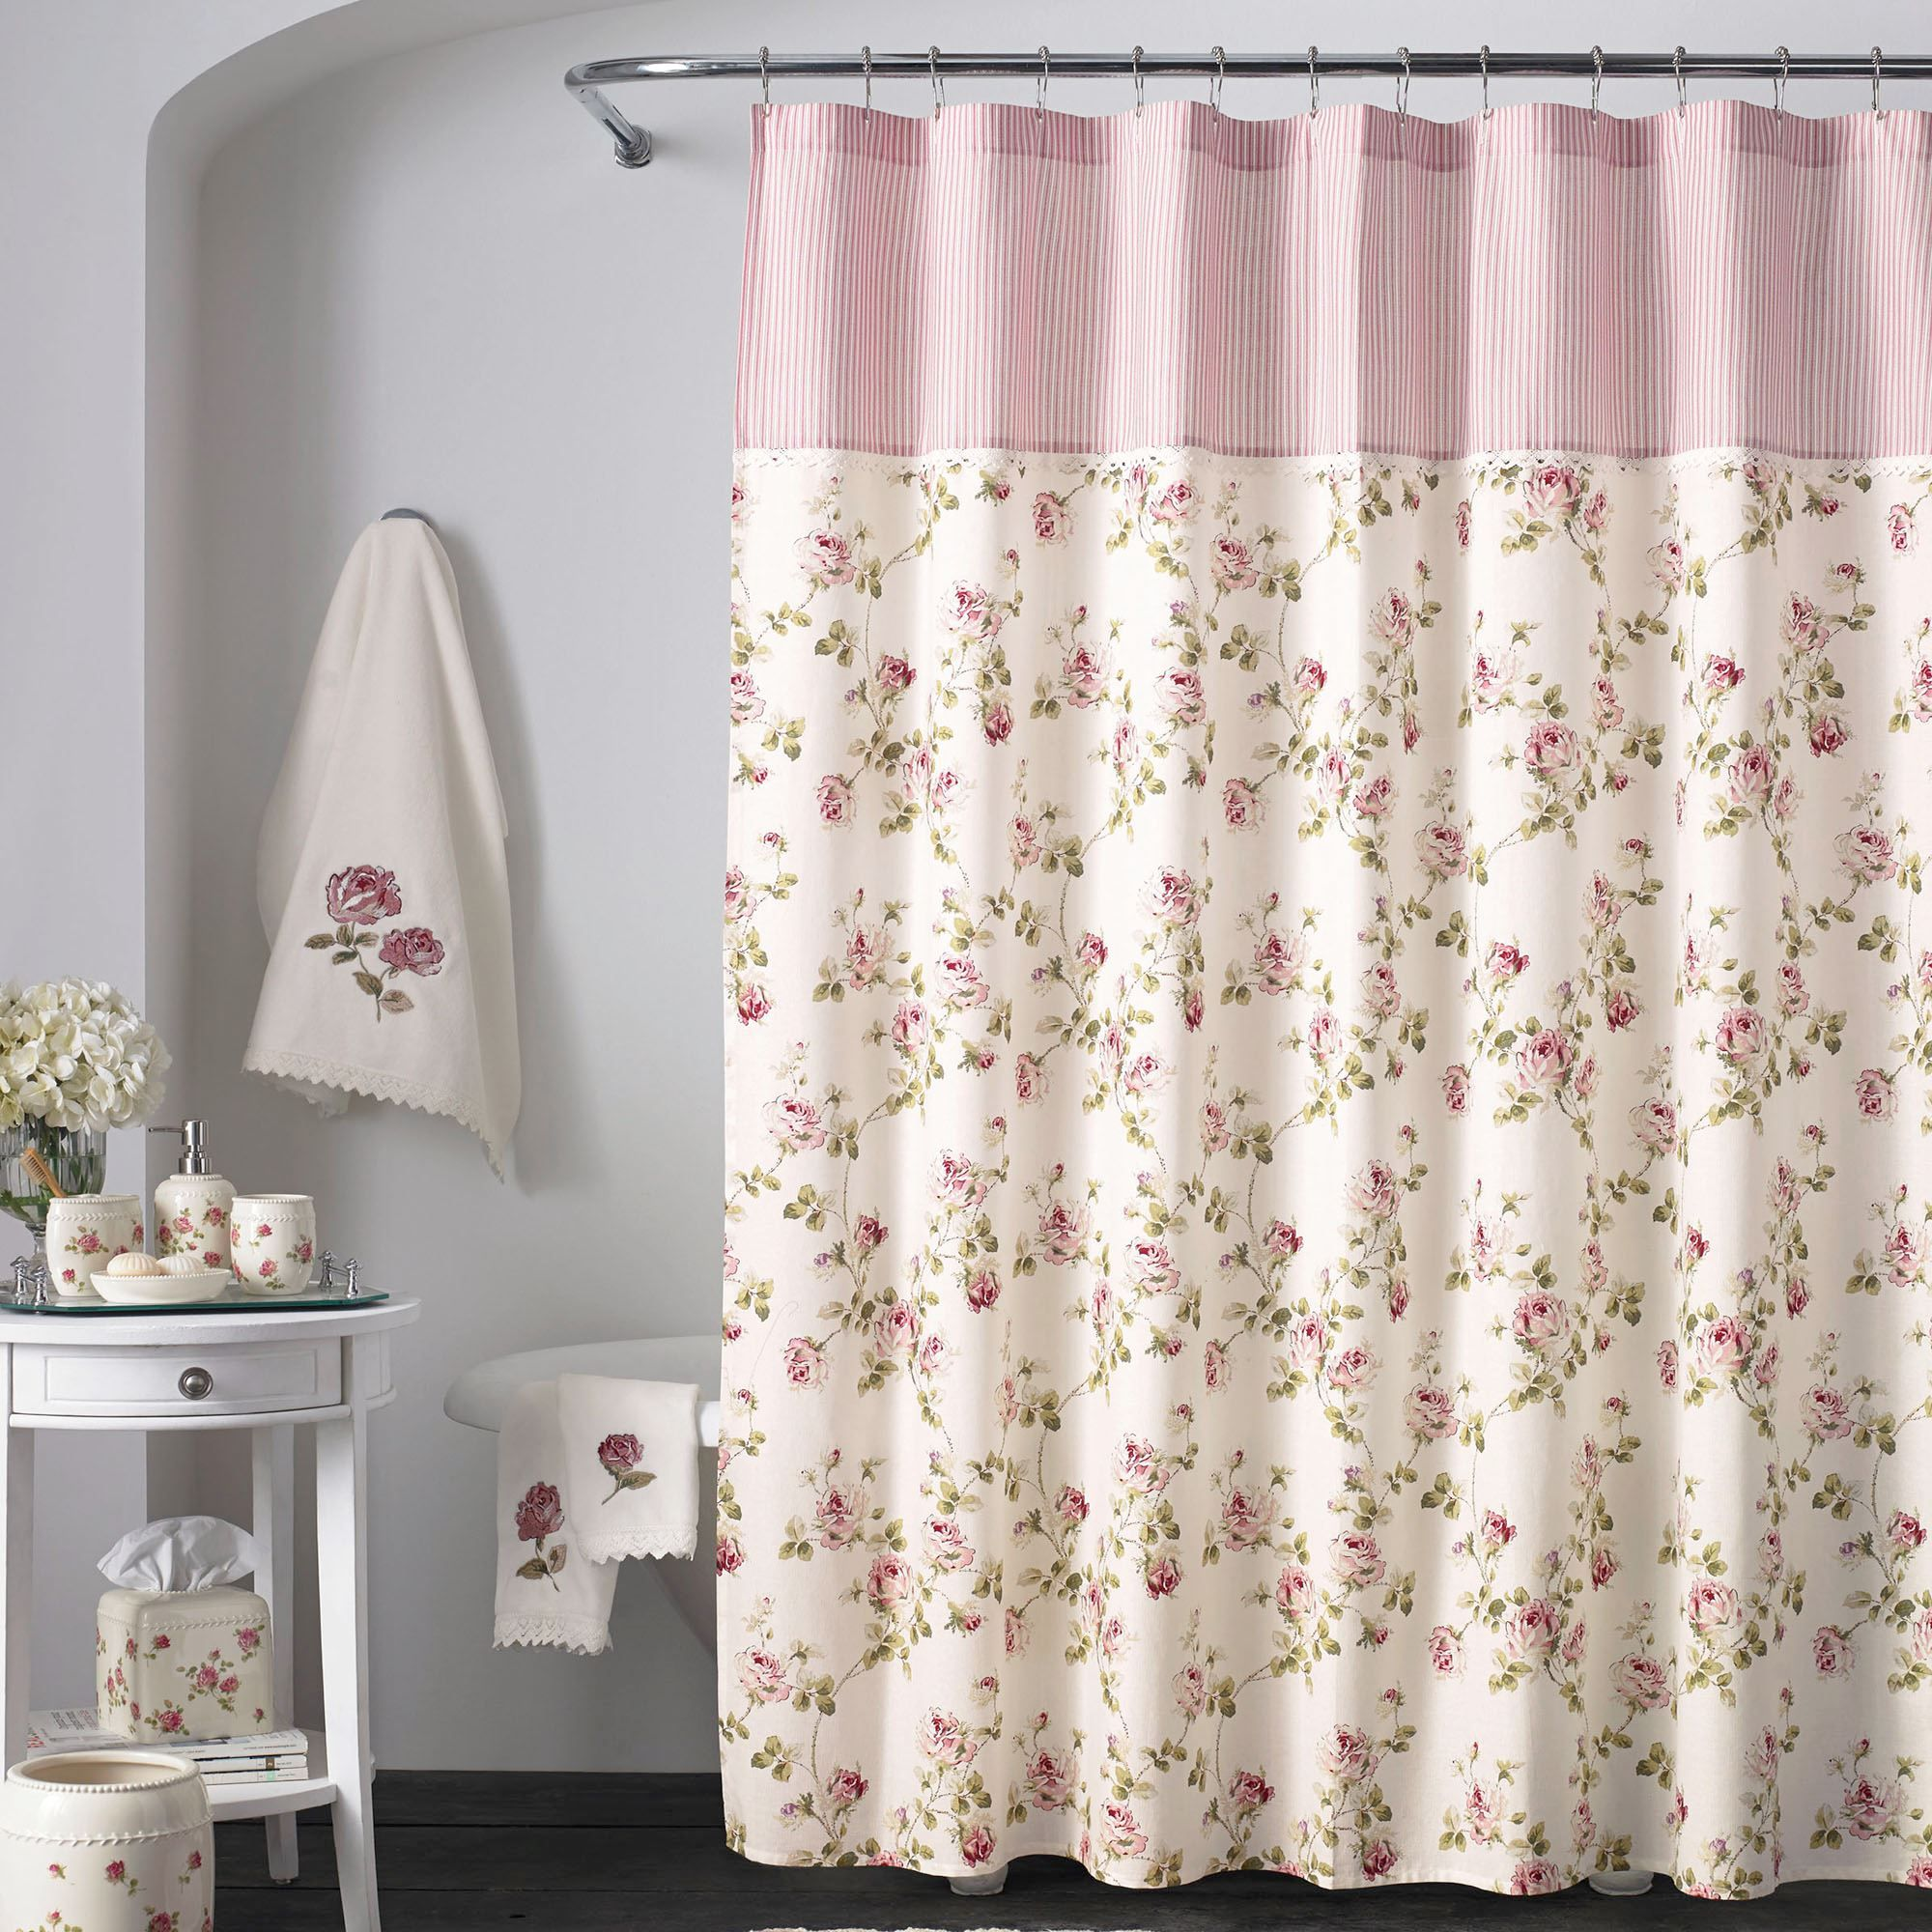 Rosalie Pink Floral Shower Curtain By Piper & Wright